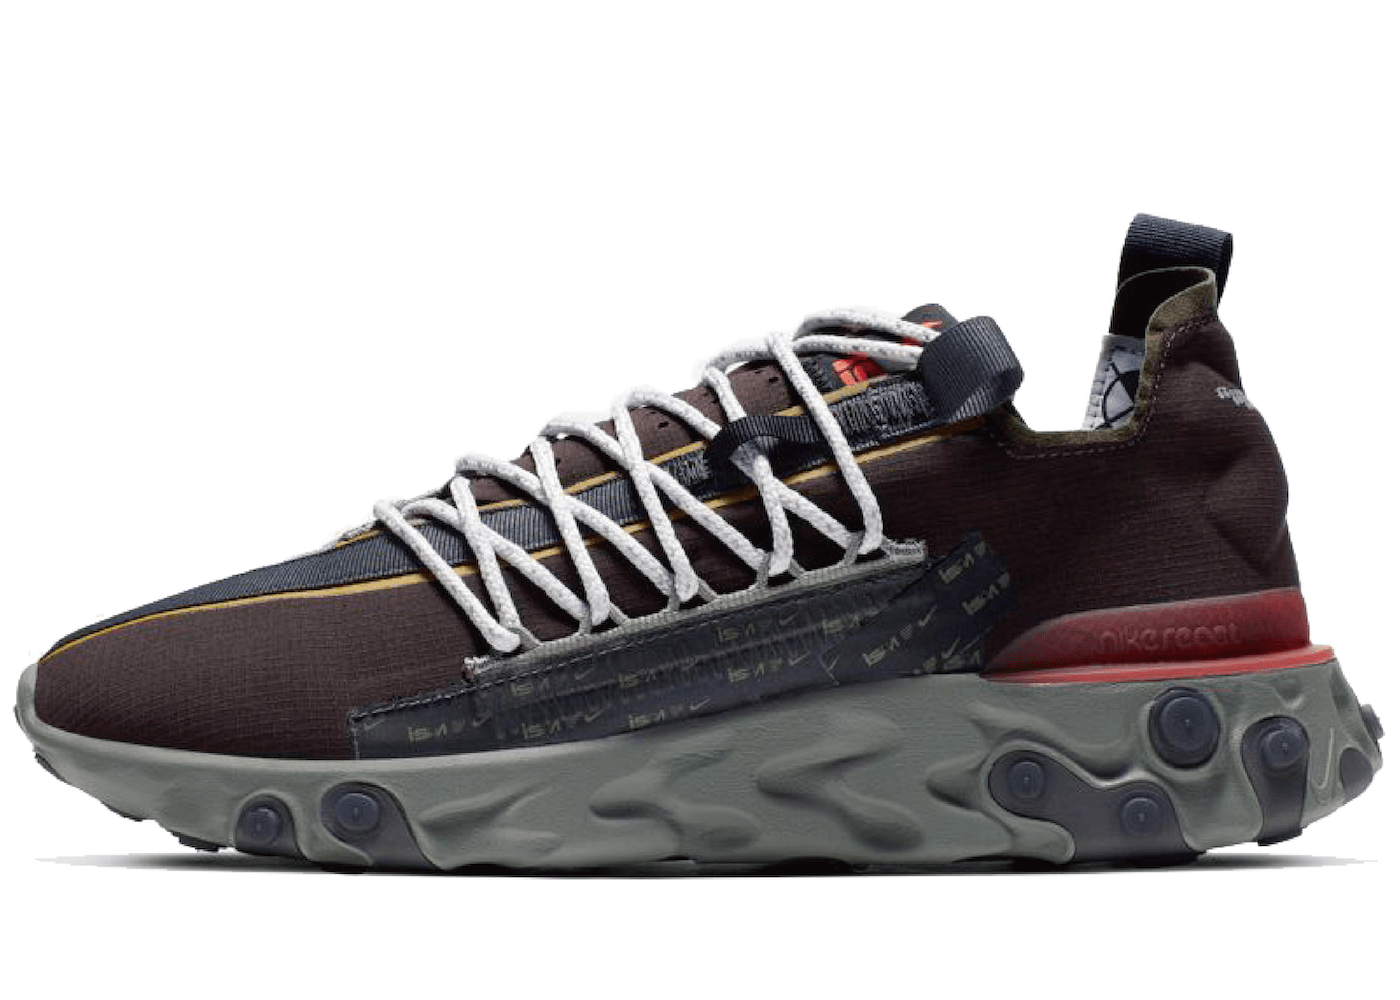 Nike ISPA React Low Velvet Brownの写真